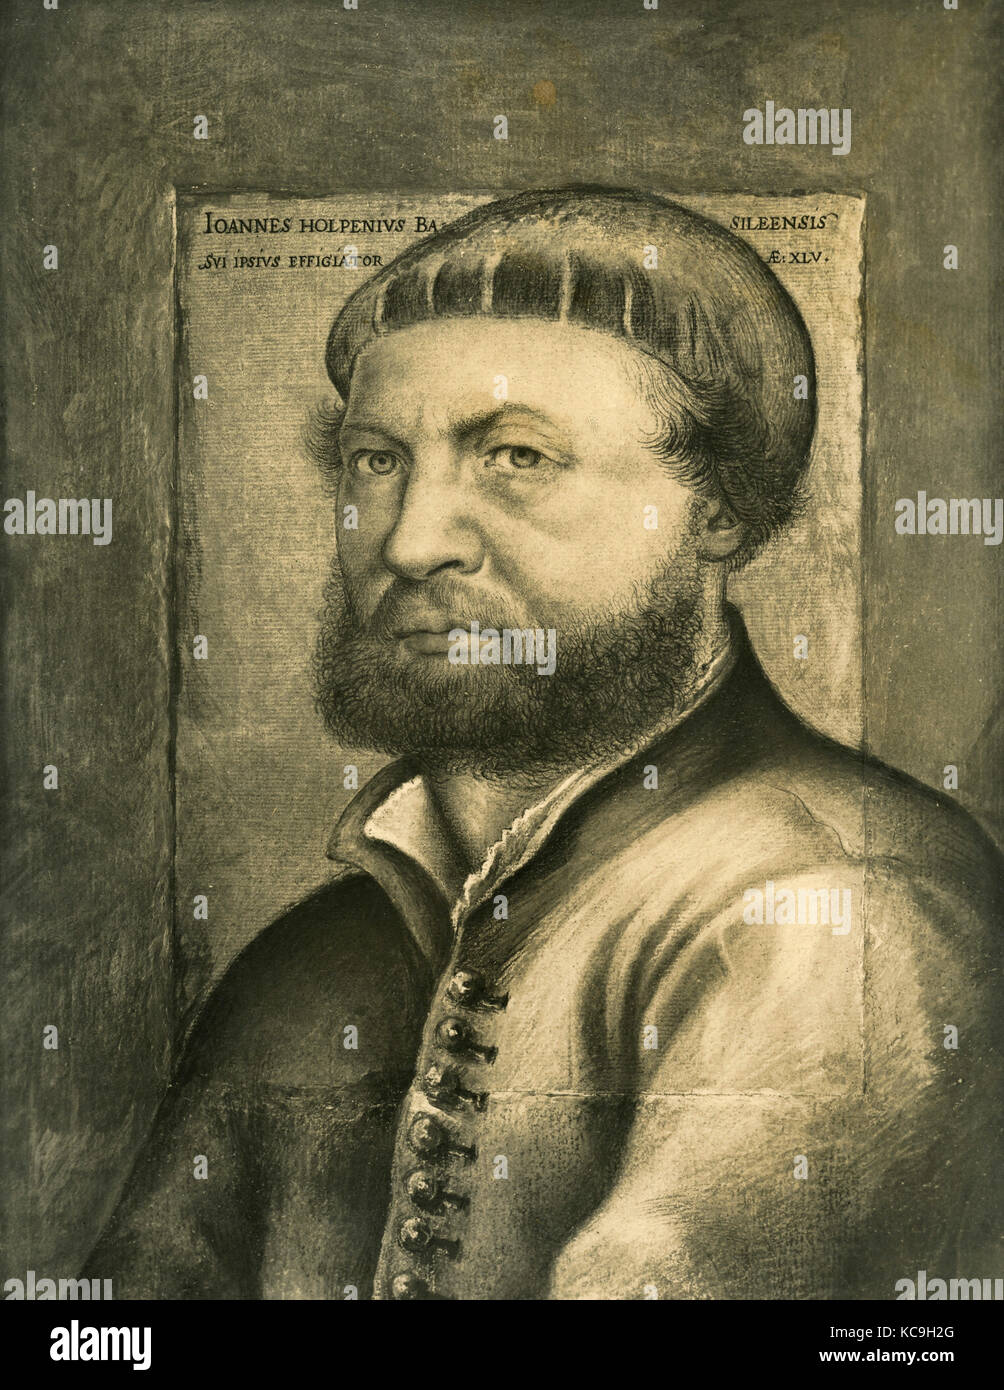 Self-portrait of German painter Hans Holbein the Younger - Stock Image